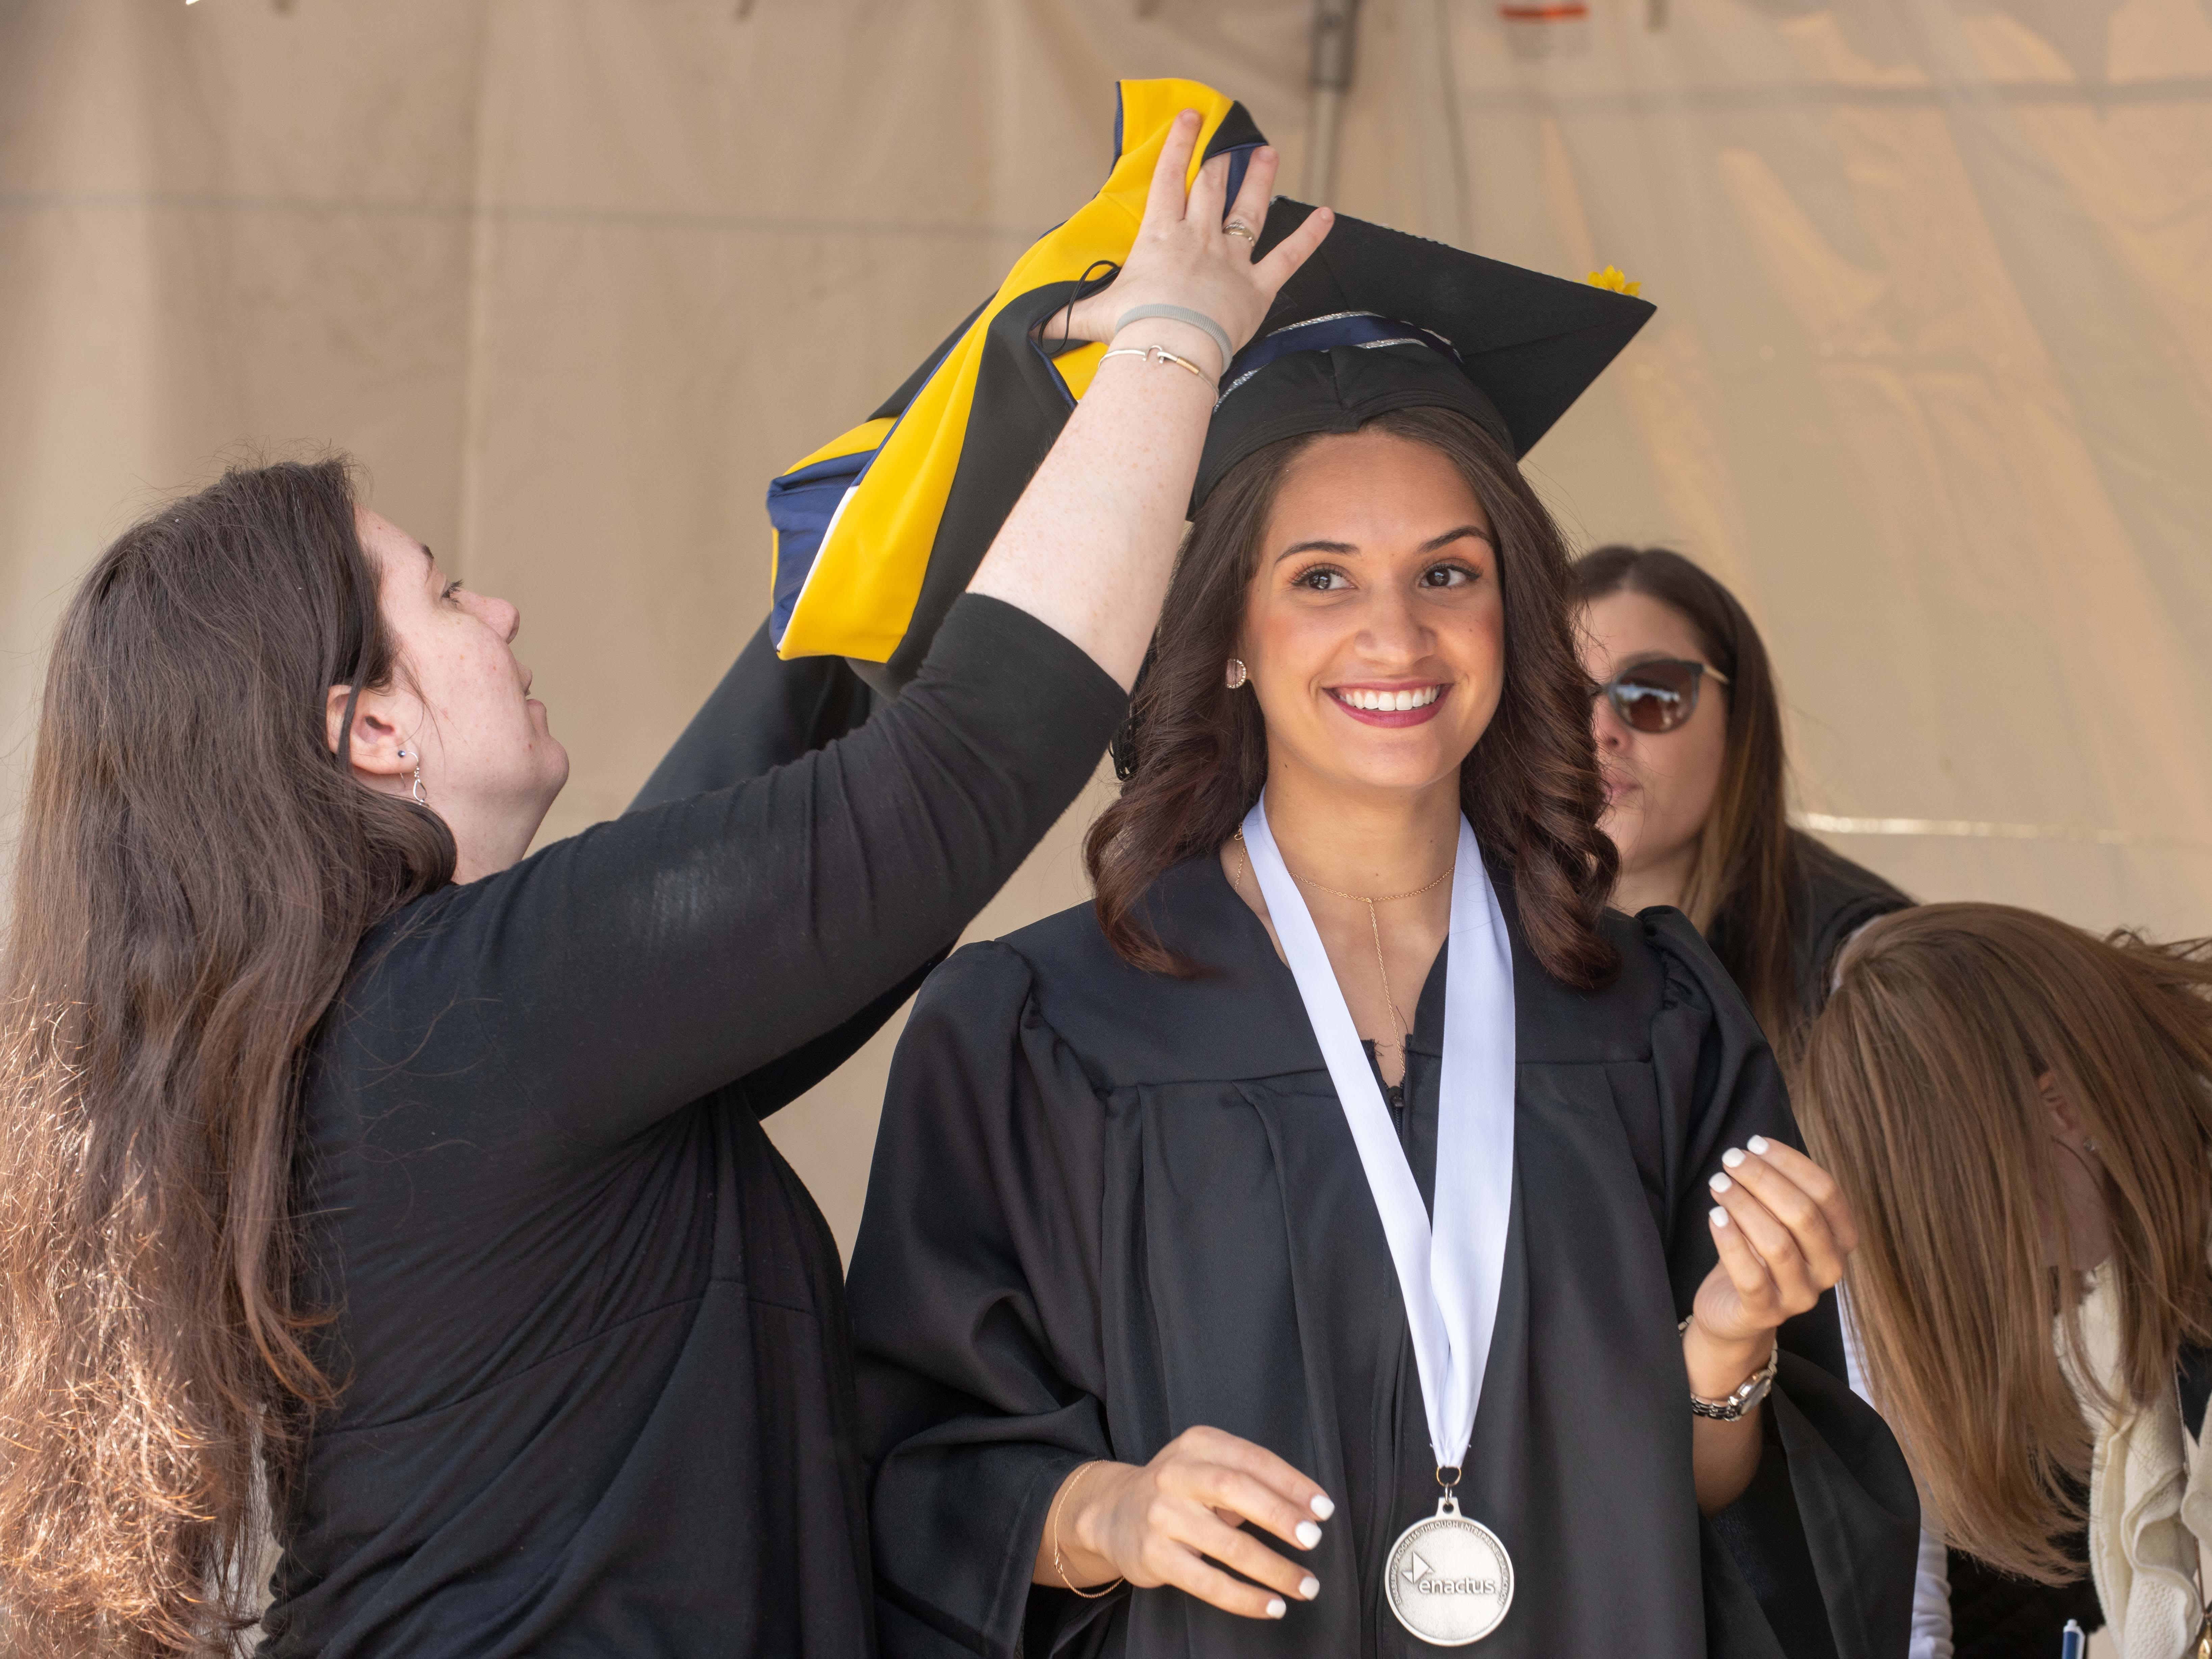 Graduate Diana Pralgo of New York City gets ready for the Monmouth University undergraduate commencement for the class of 2019 at PNC Bank Arts Center, Holmdel, on May 15, 2019.